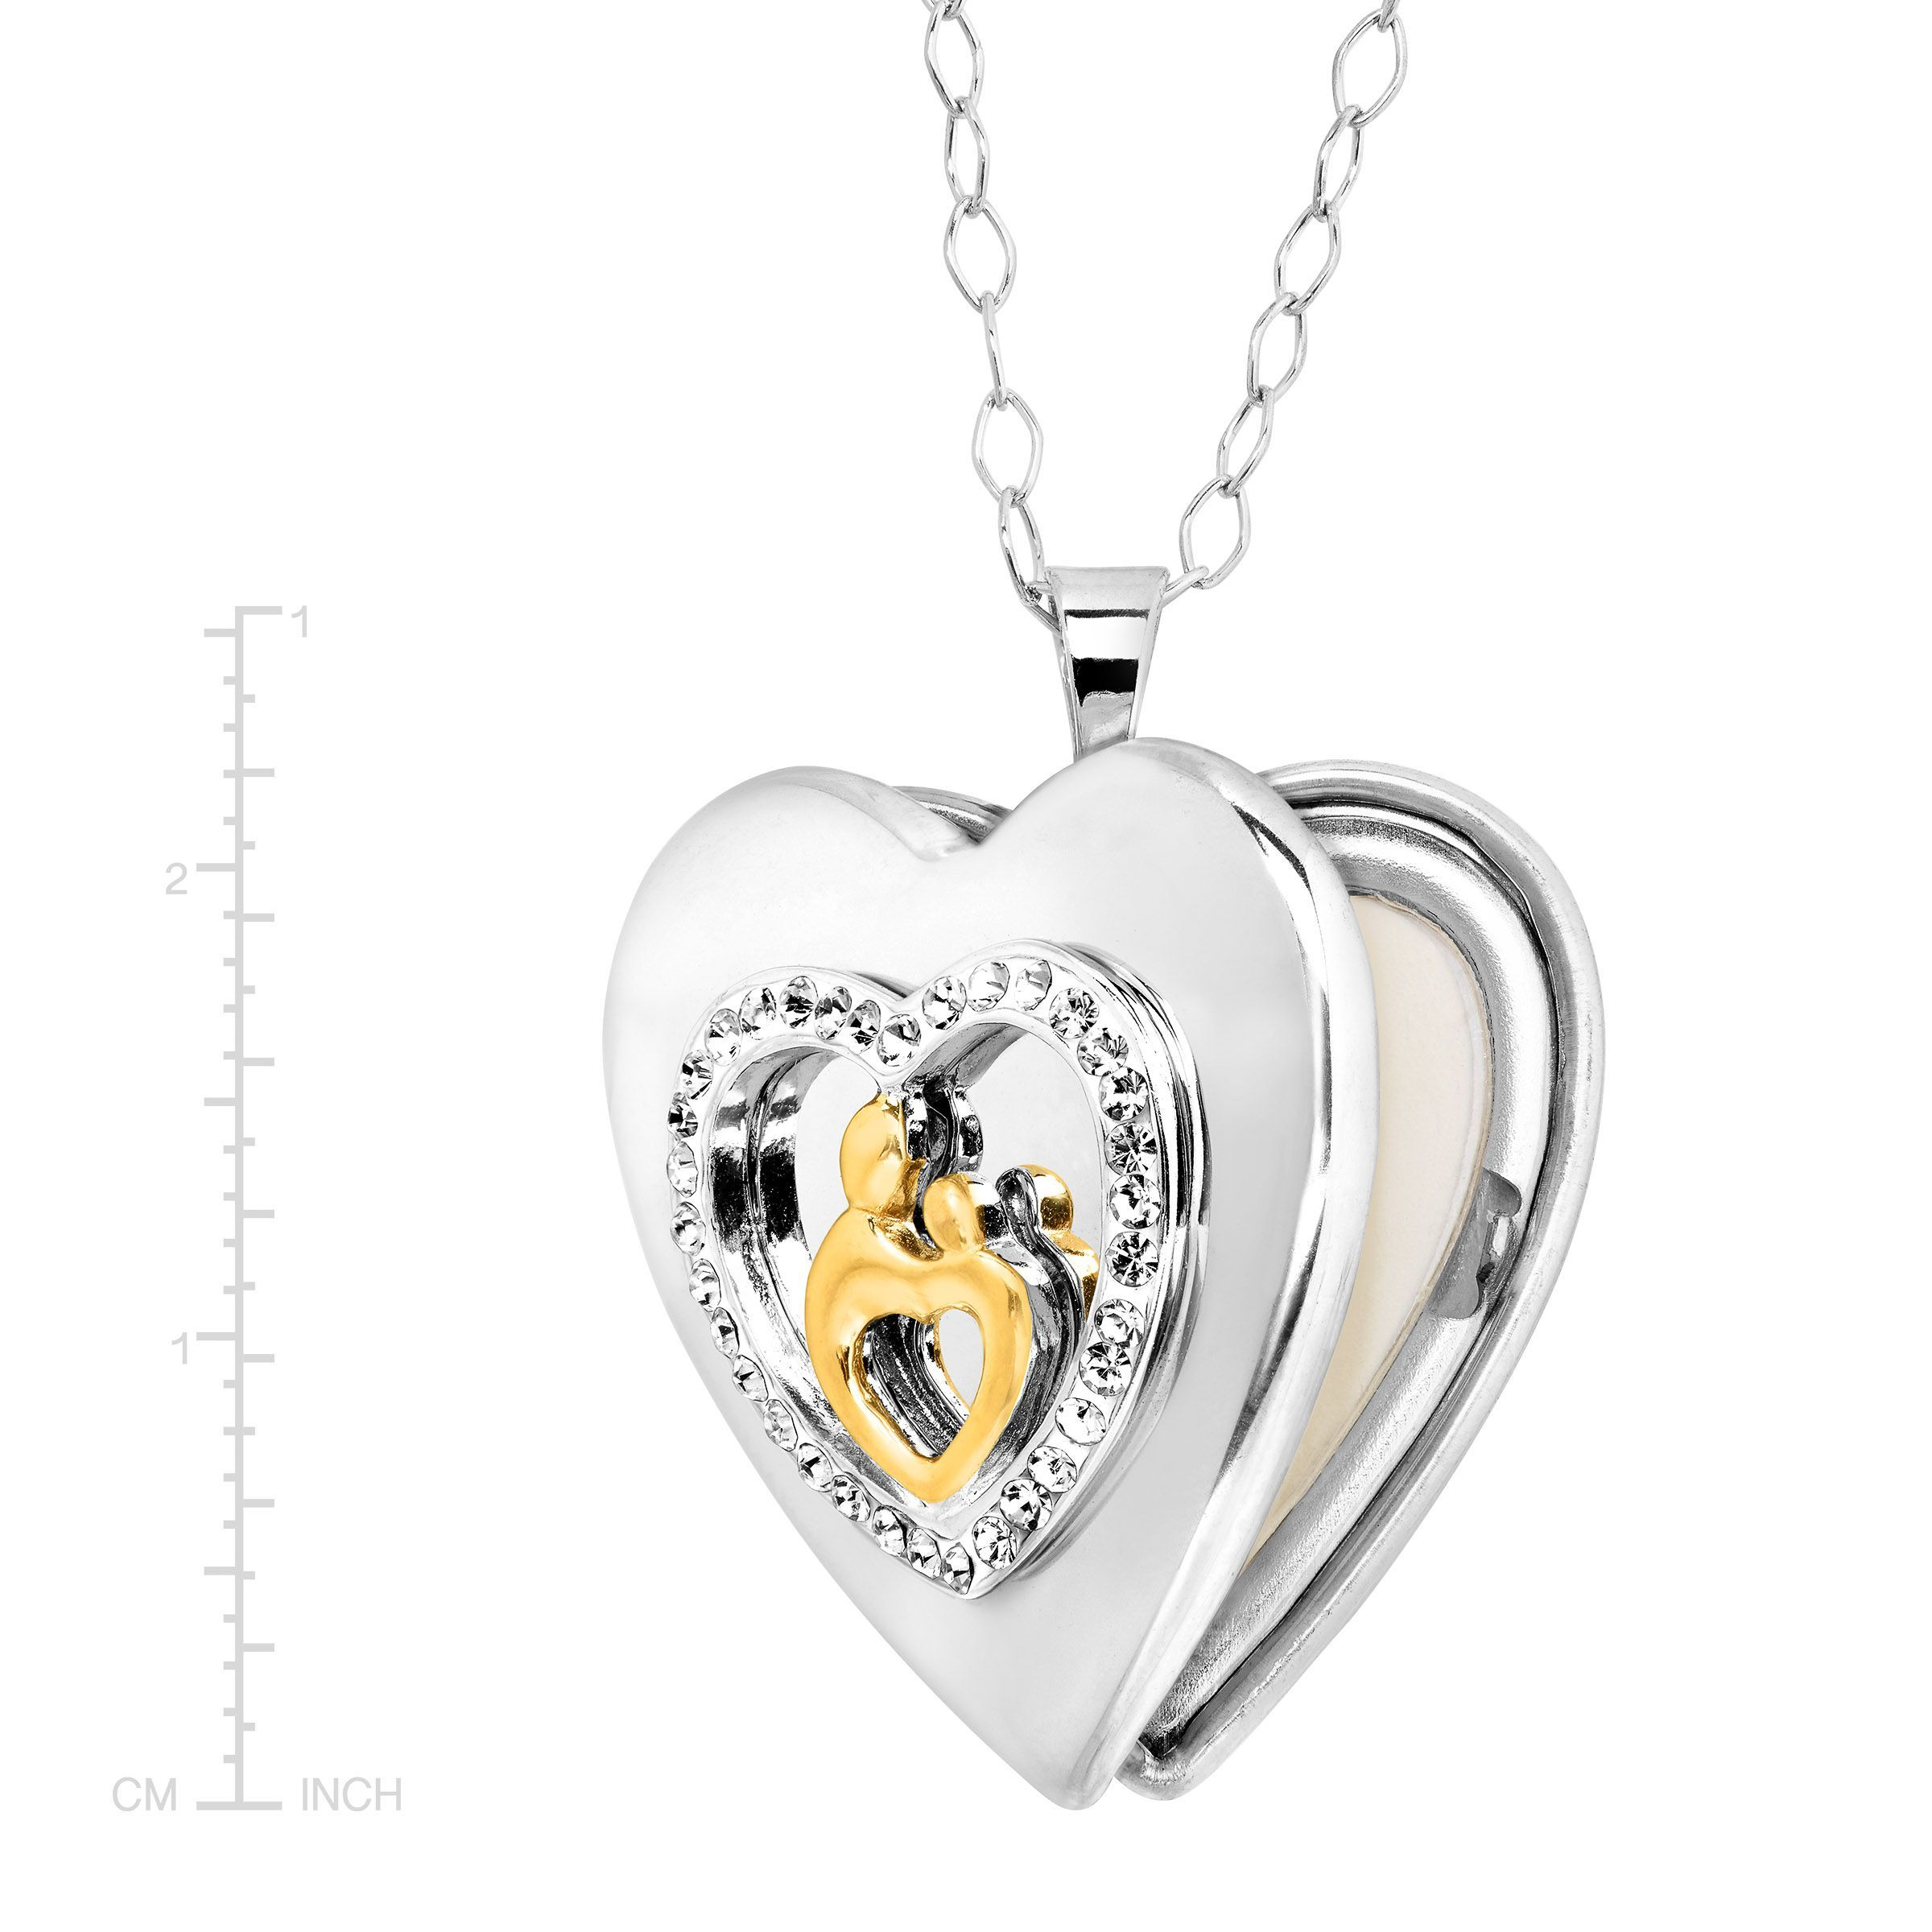 18K White Gold Plated Infinity Mom Love Heart Necklace with Swarovski Crystals